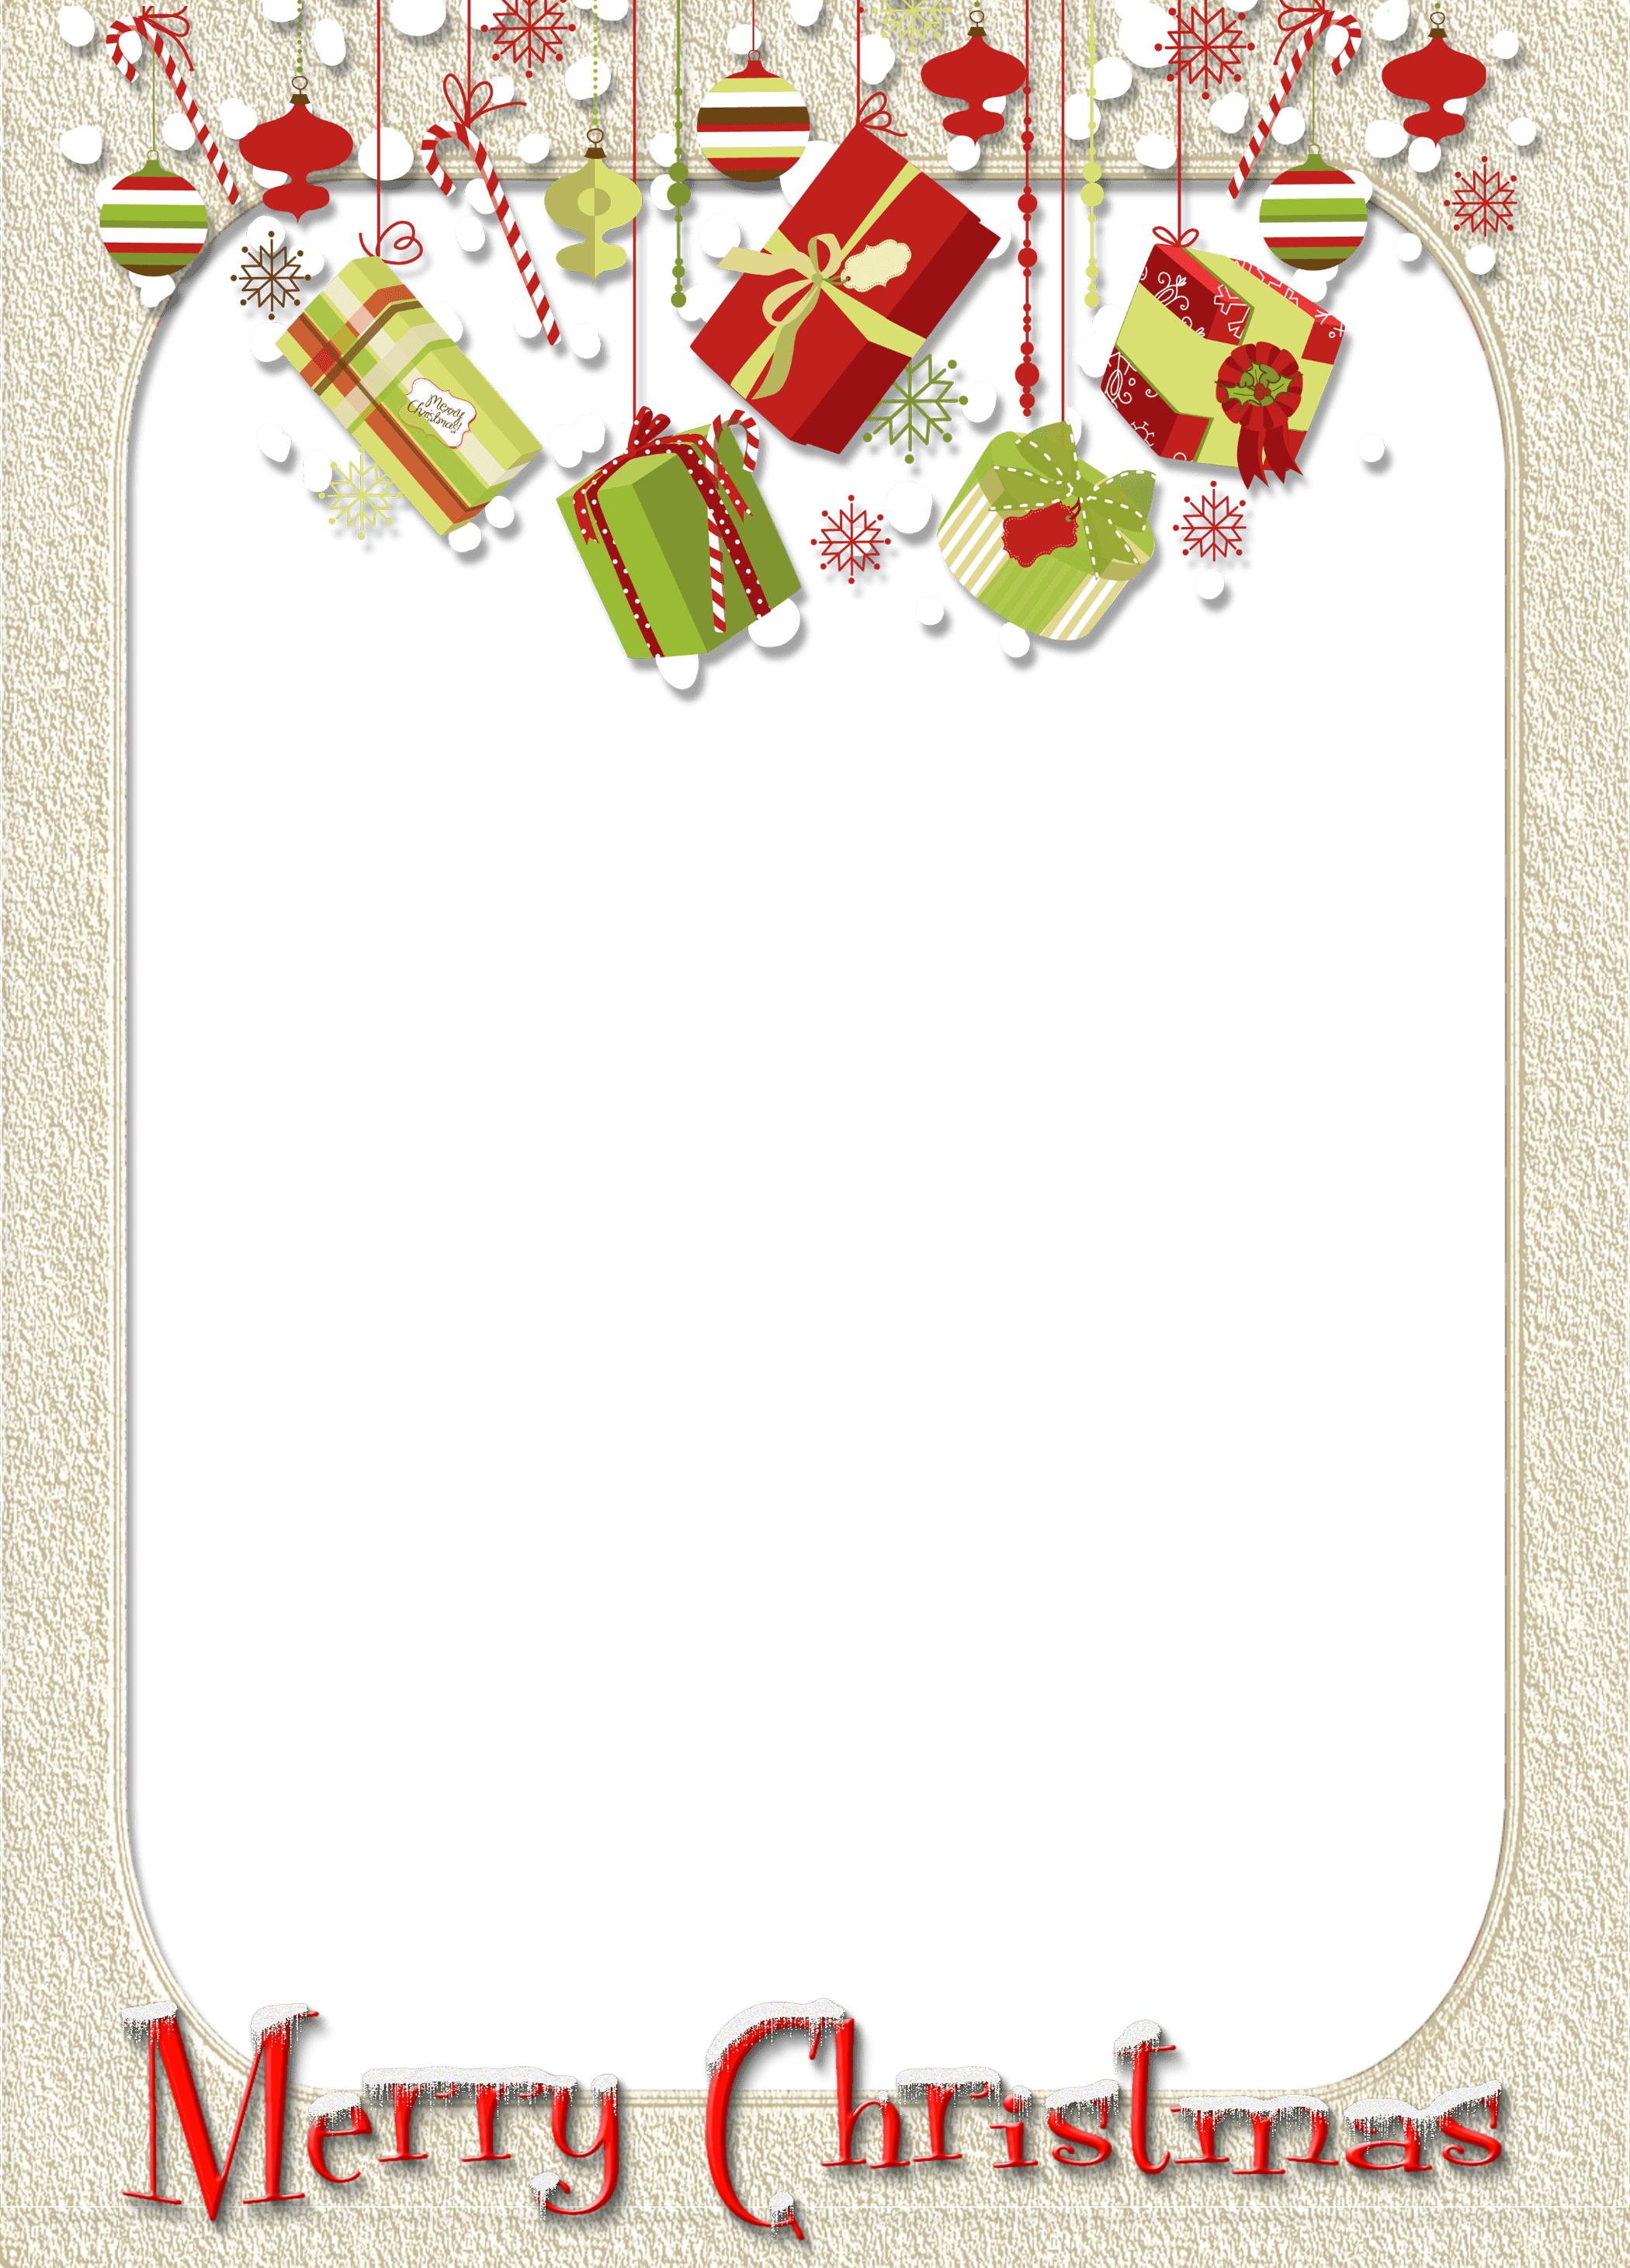 Merry Christmas Frames And Borders Png | Galleryimage.co